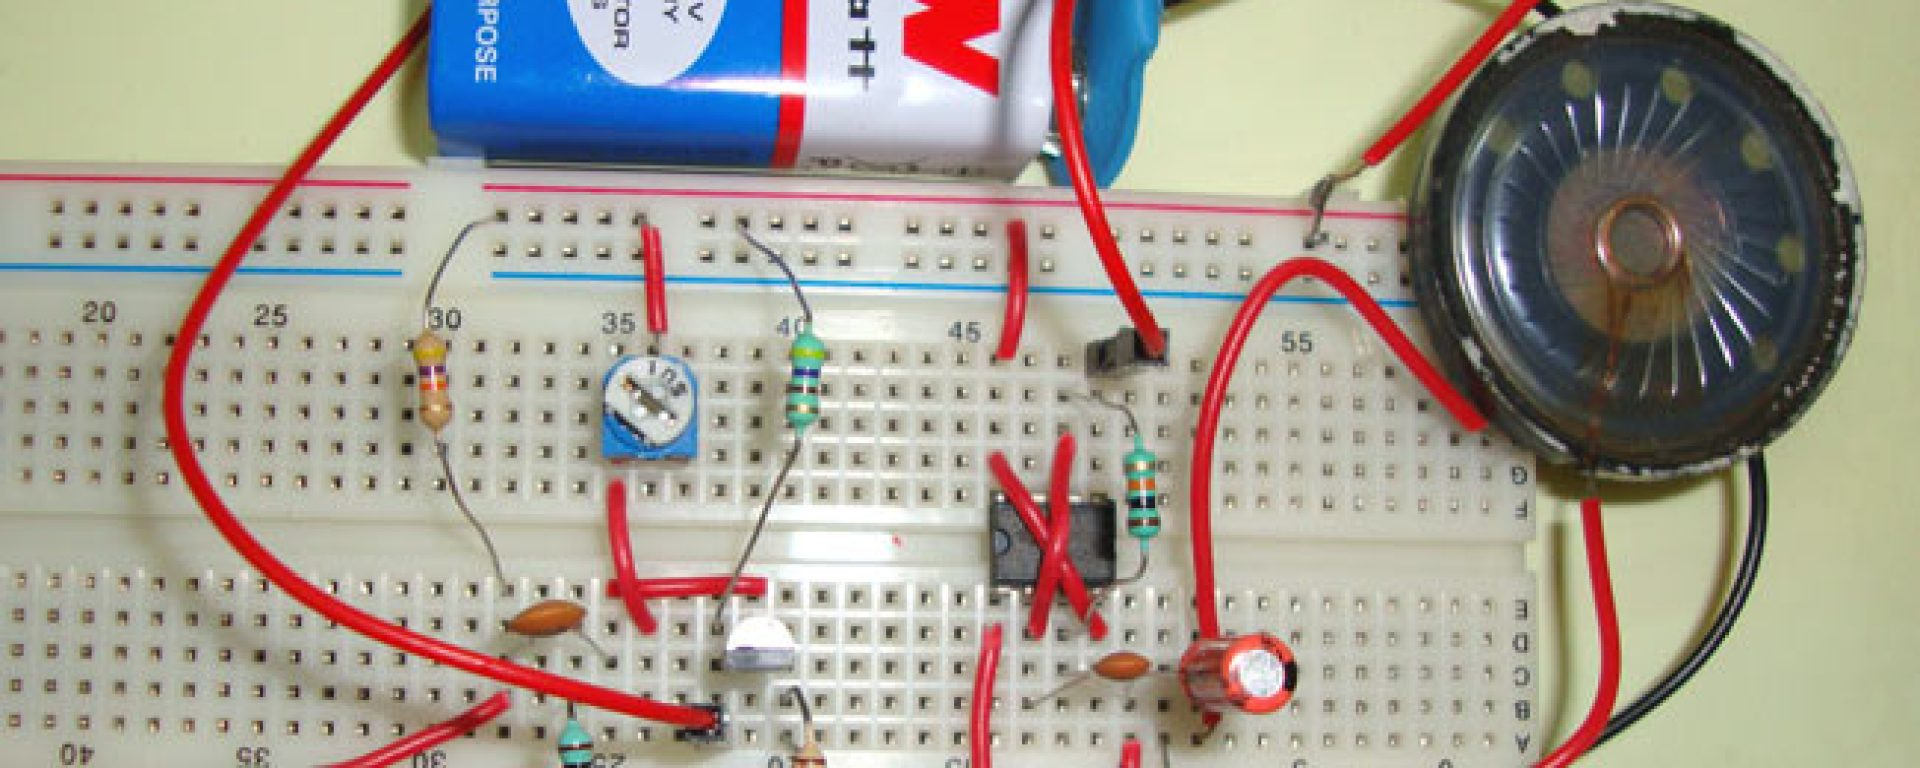 Simple Audio Amplifier Using 555 Timer Ic Technology Hacking Internal Diagram Circuit